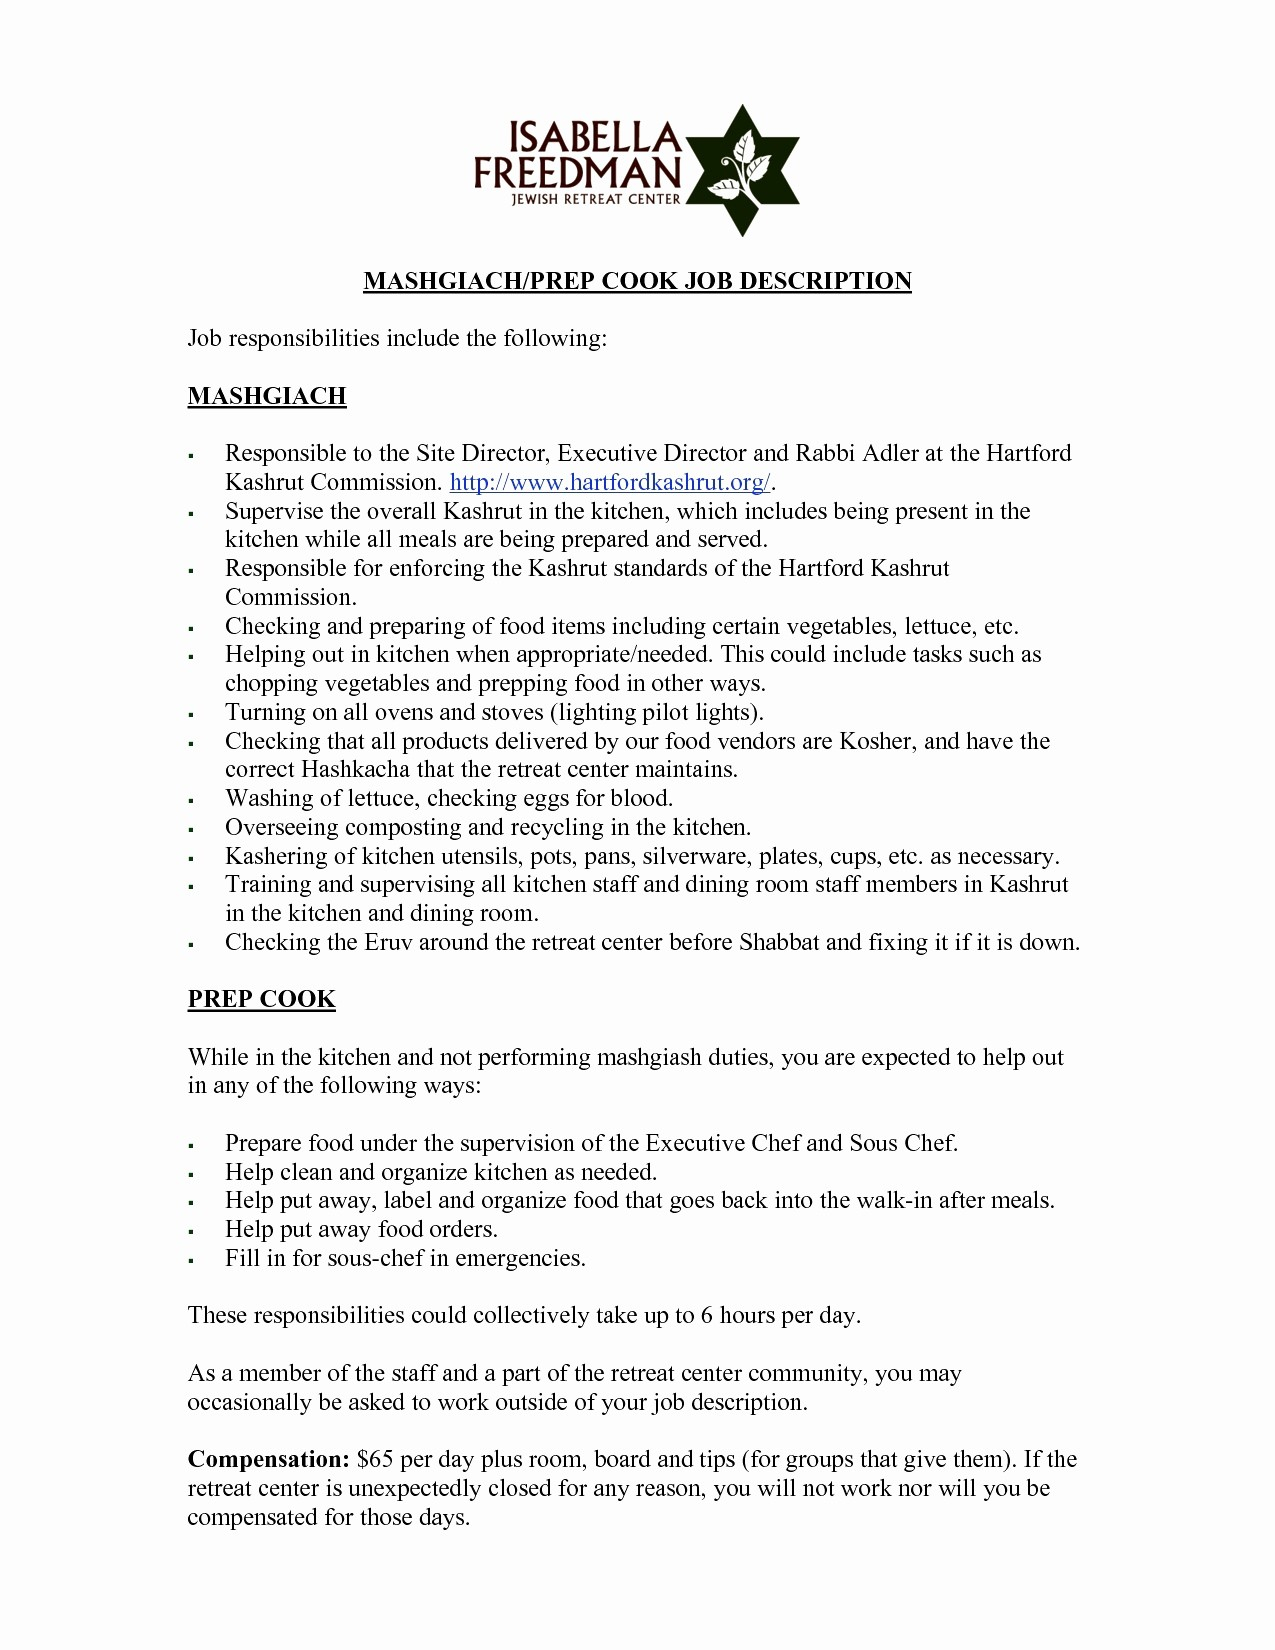 Customer Service Cover Letter Template - Sample Cover Letter for Job Application Customer Service New